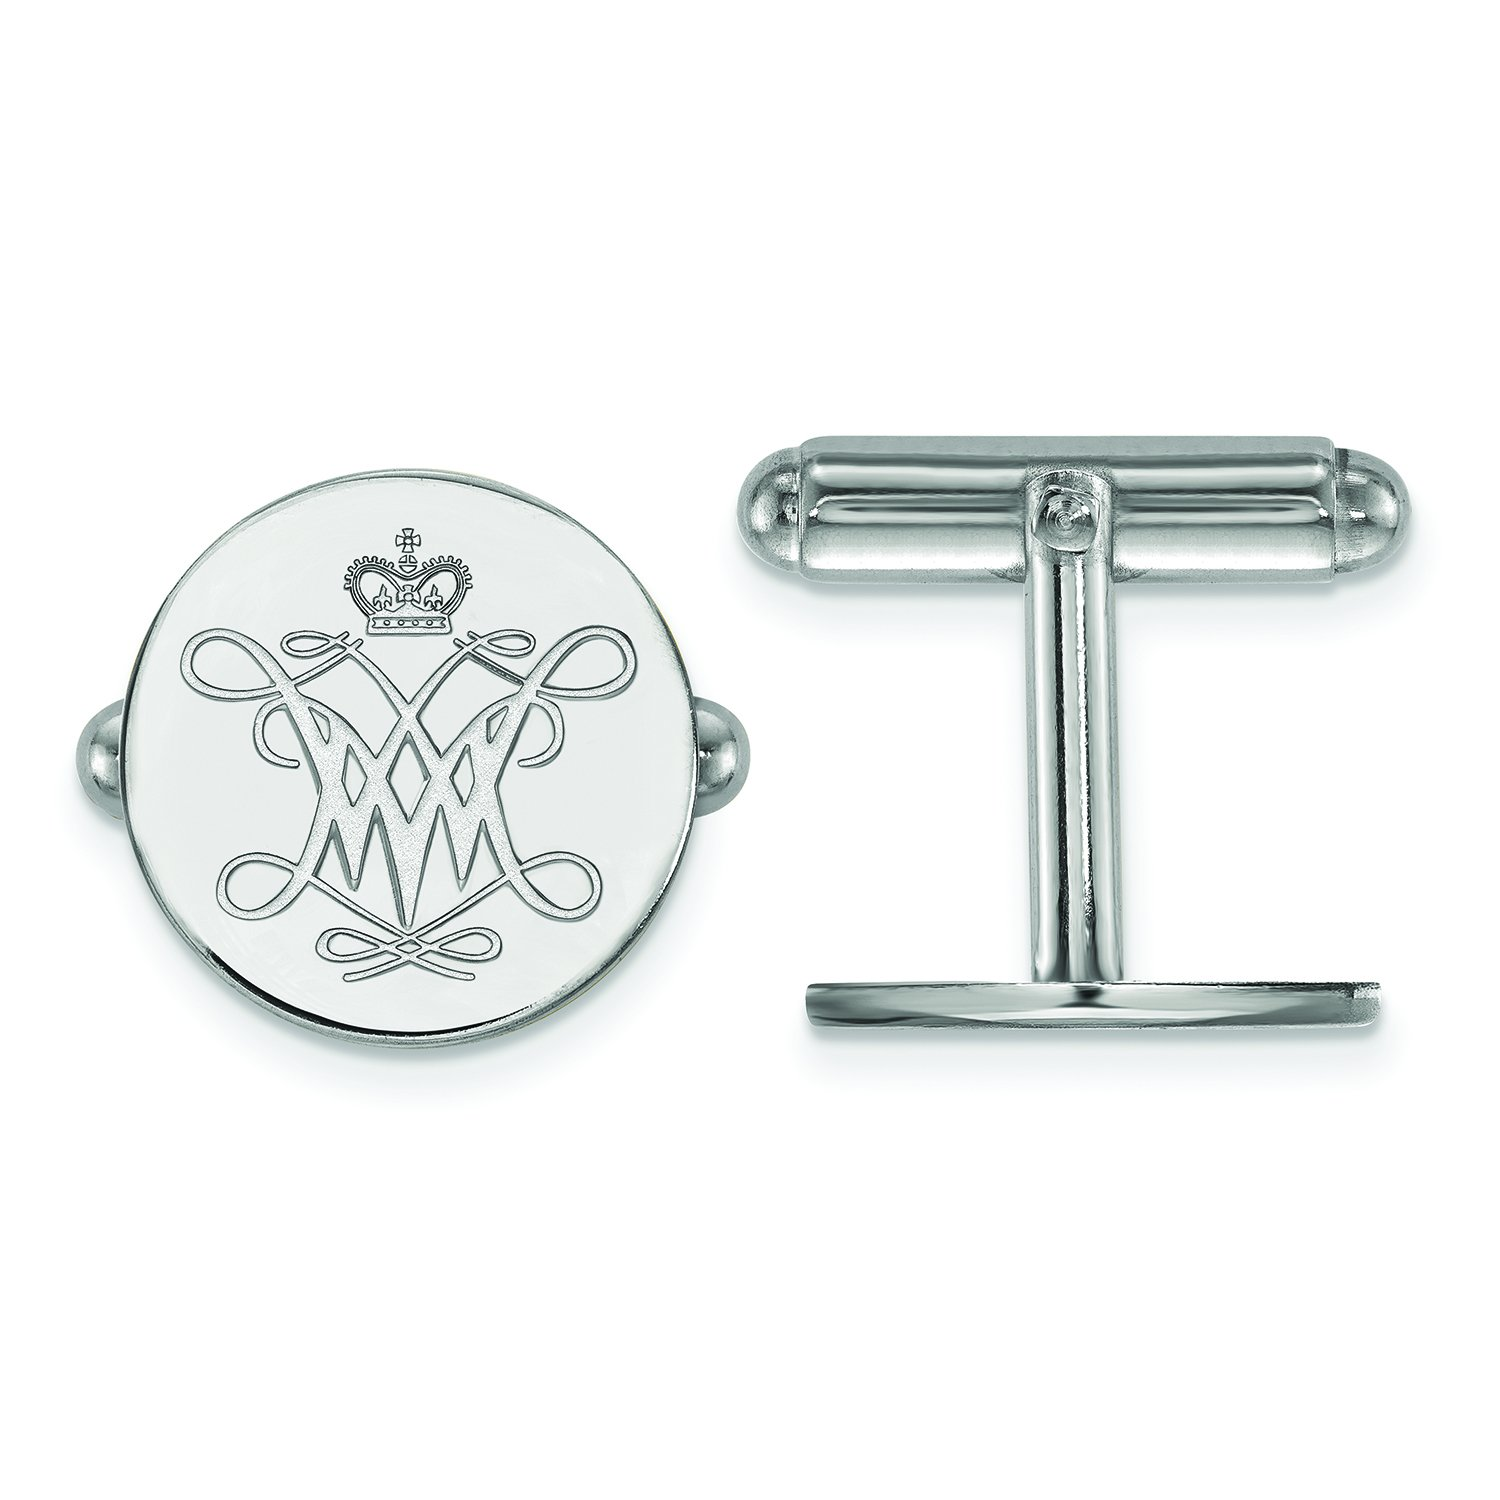 LogoArt Sterling Silver William and Mary Cuff Link